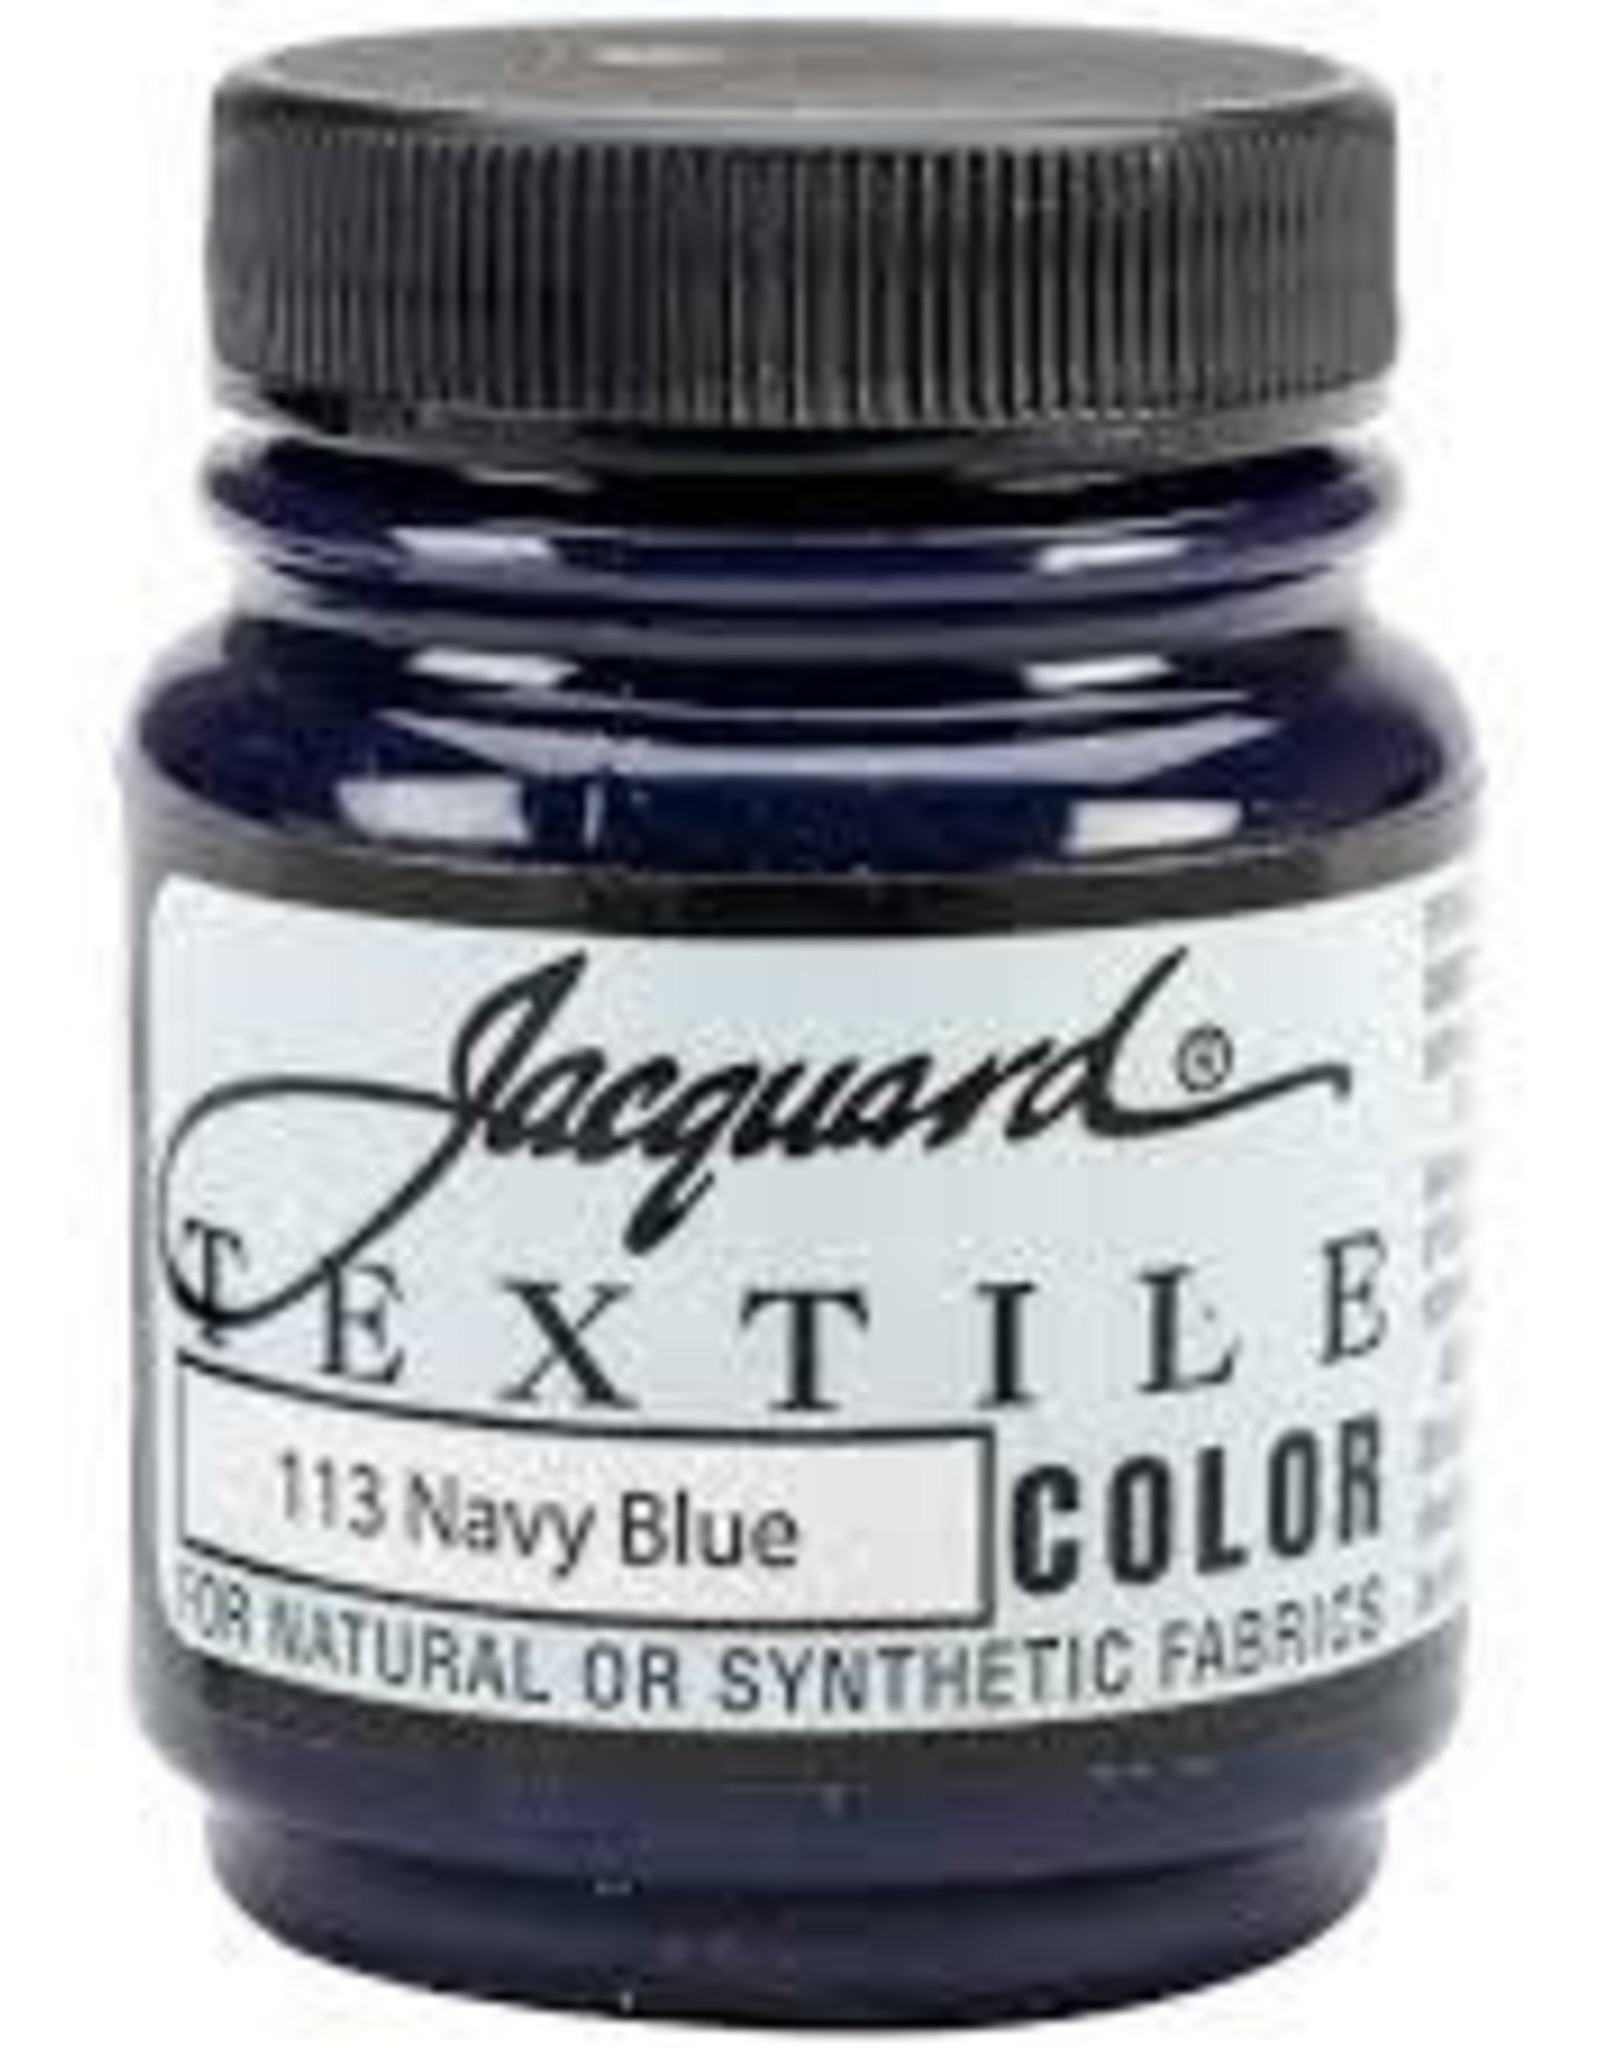 Jacquard Textile Color Navy Blue